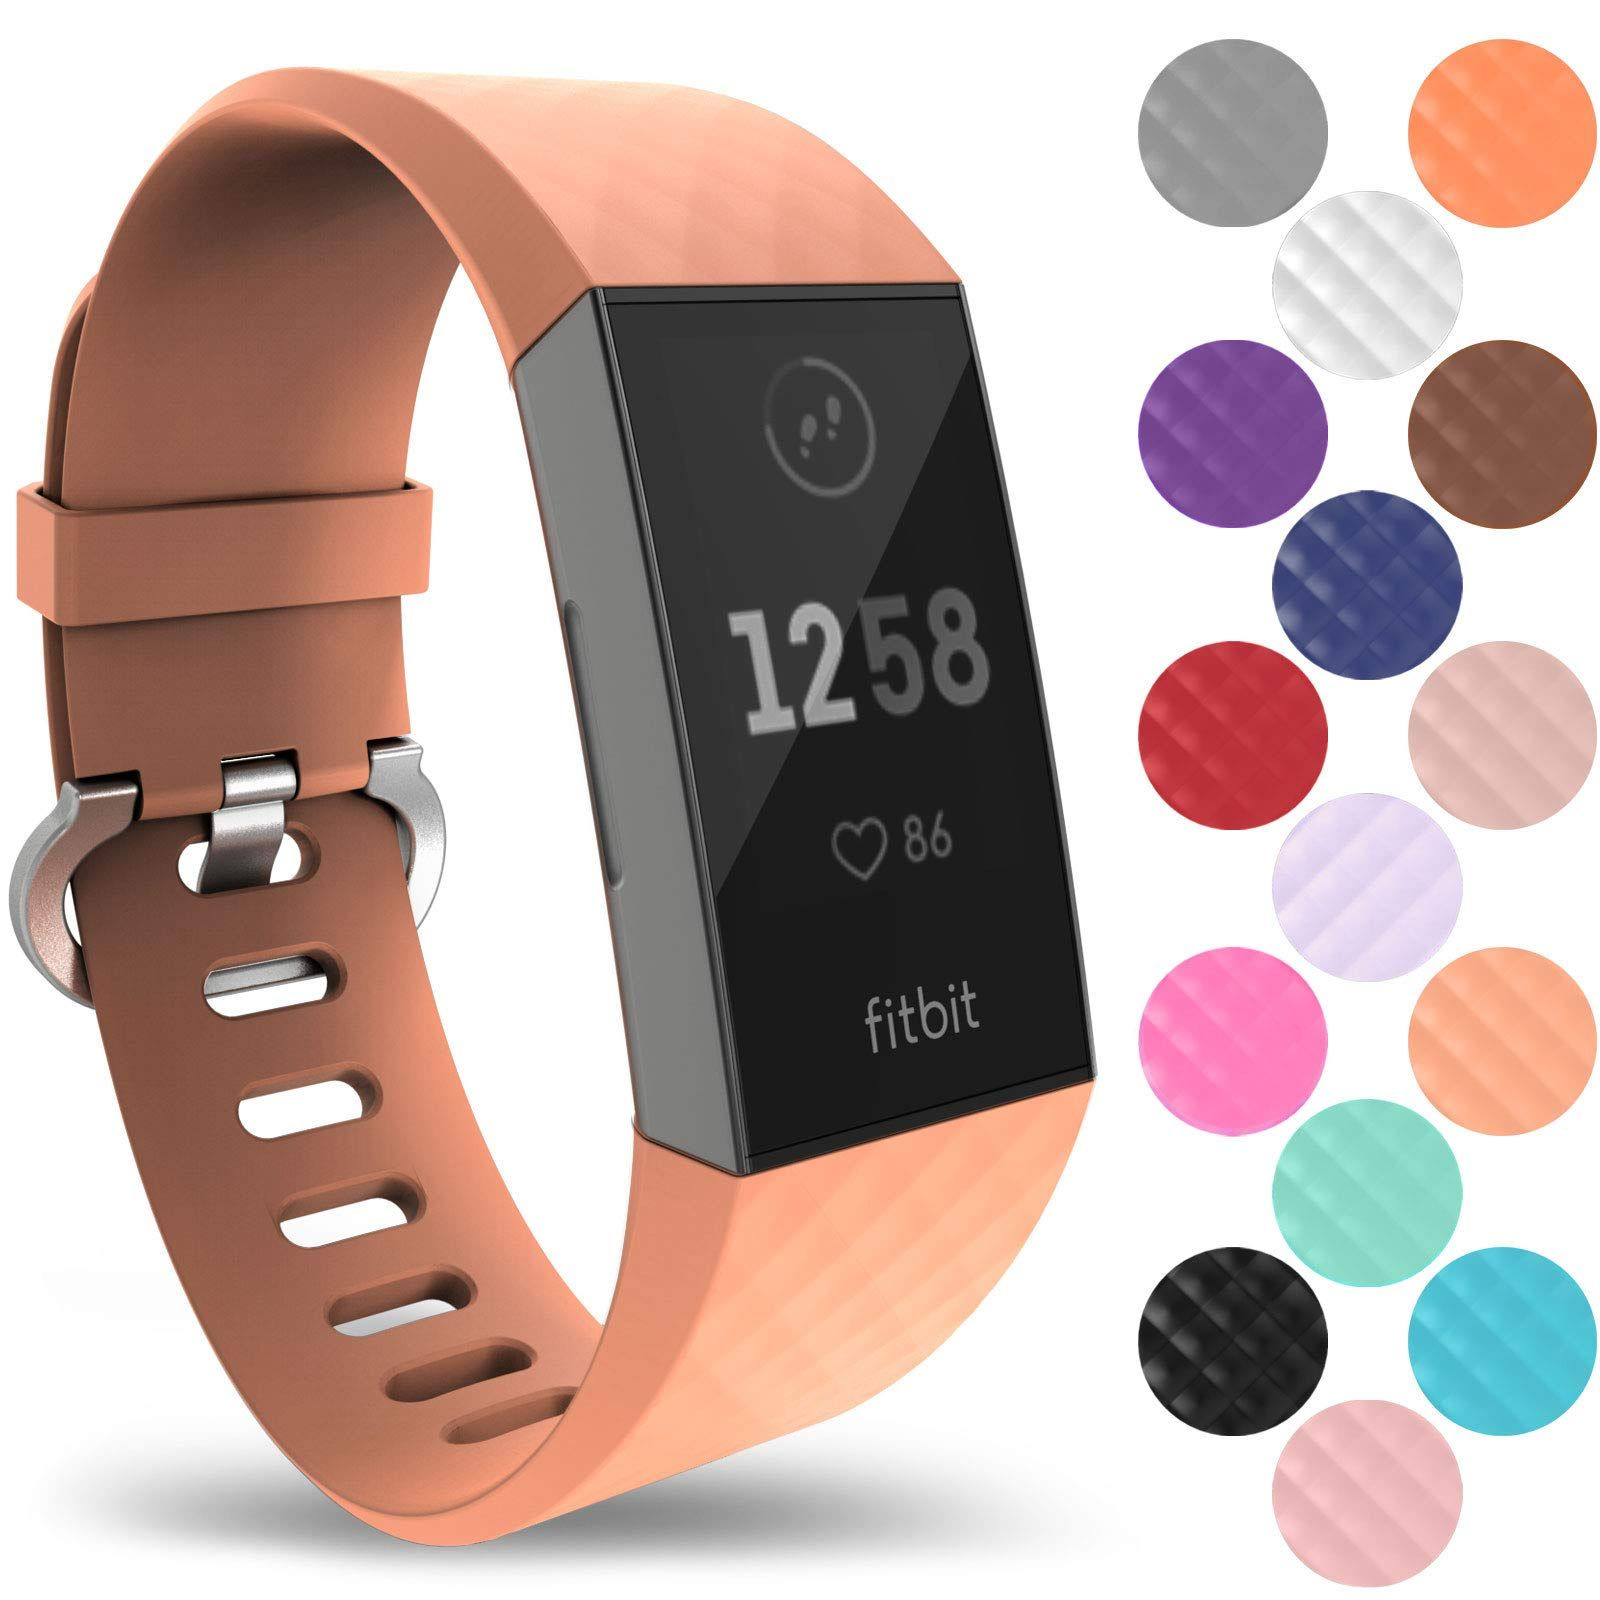 Yousave Accessories Fitbit Charge 3 Bands Replacement Silicone